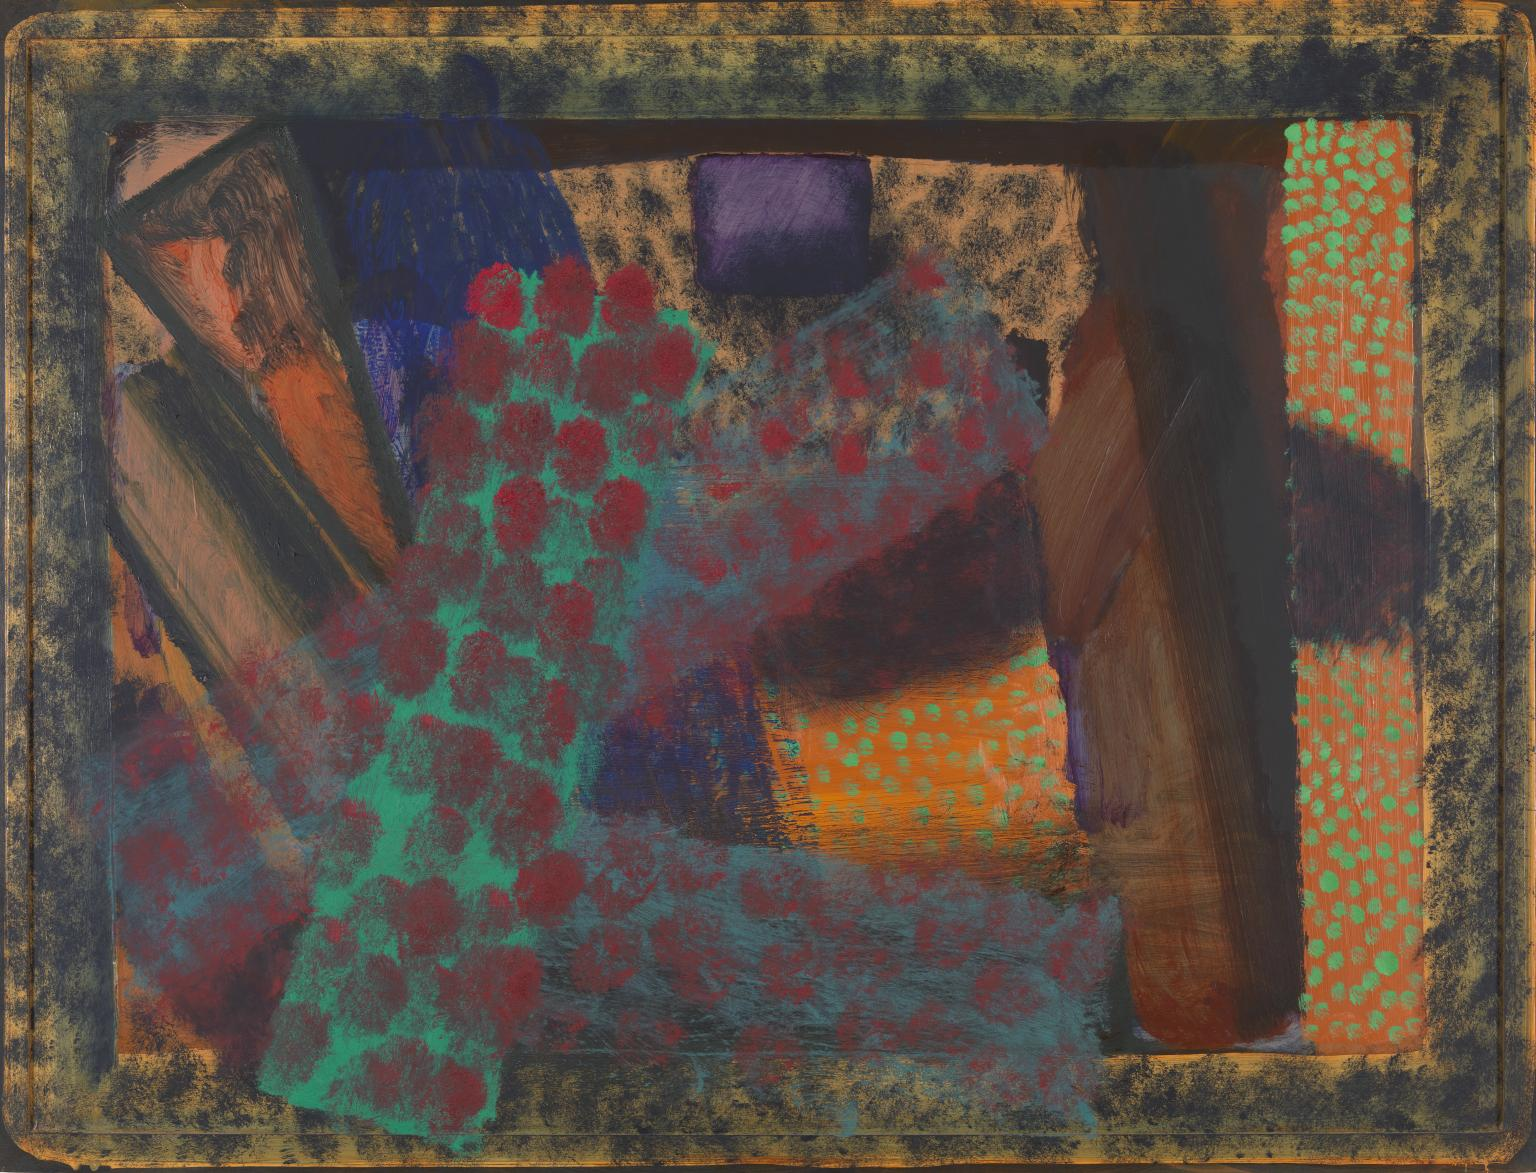 Dinner at Smith Square 1975-9 Howard Hodgkin born 1932 Purchased 1980 http://www.tate.org.uk/art/work/T03188